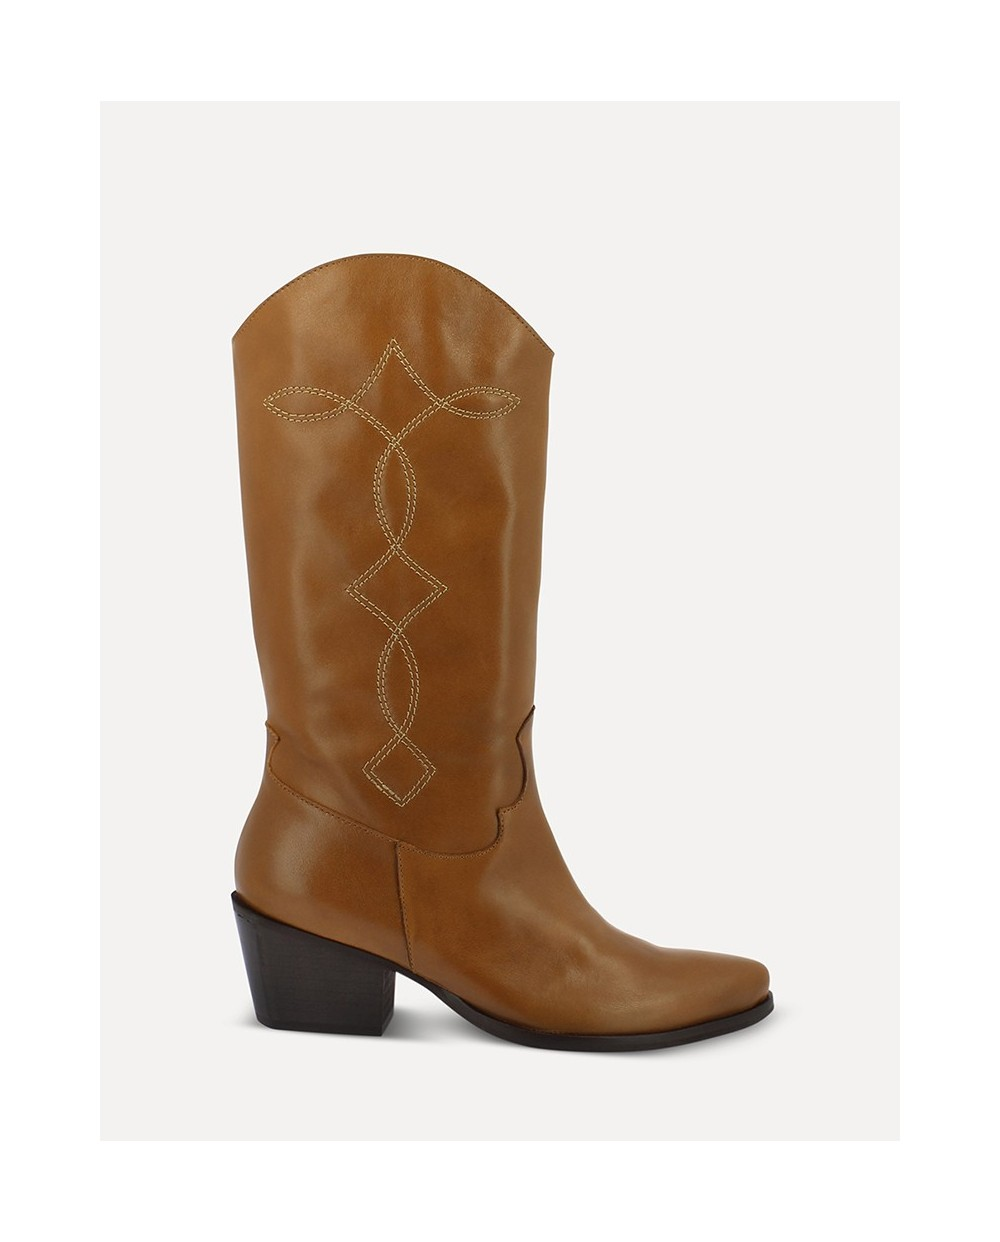 Wonders-Outlet-cowboy style mid/calf ankle boot